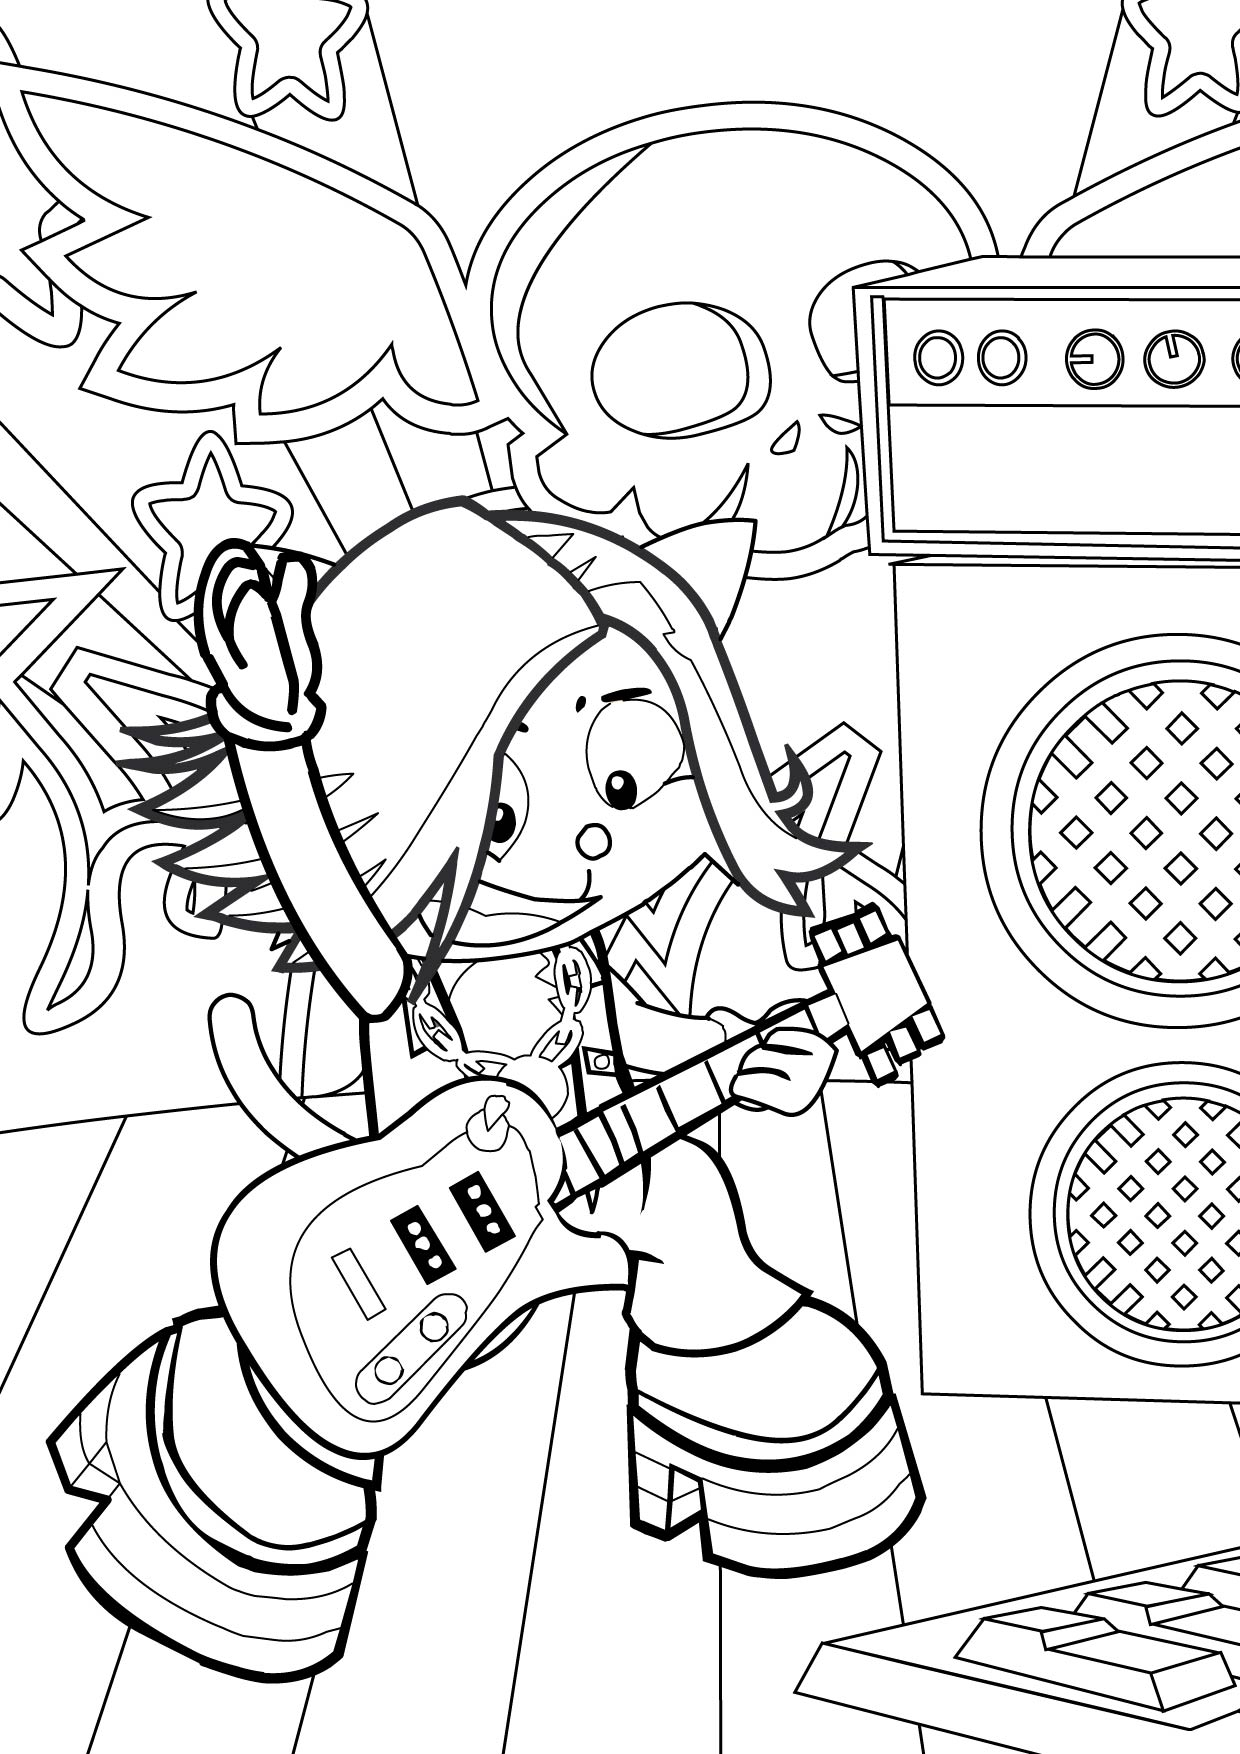 Rock Star Coloring Page - Handipoints Rock Star Coloring Pages